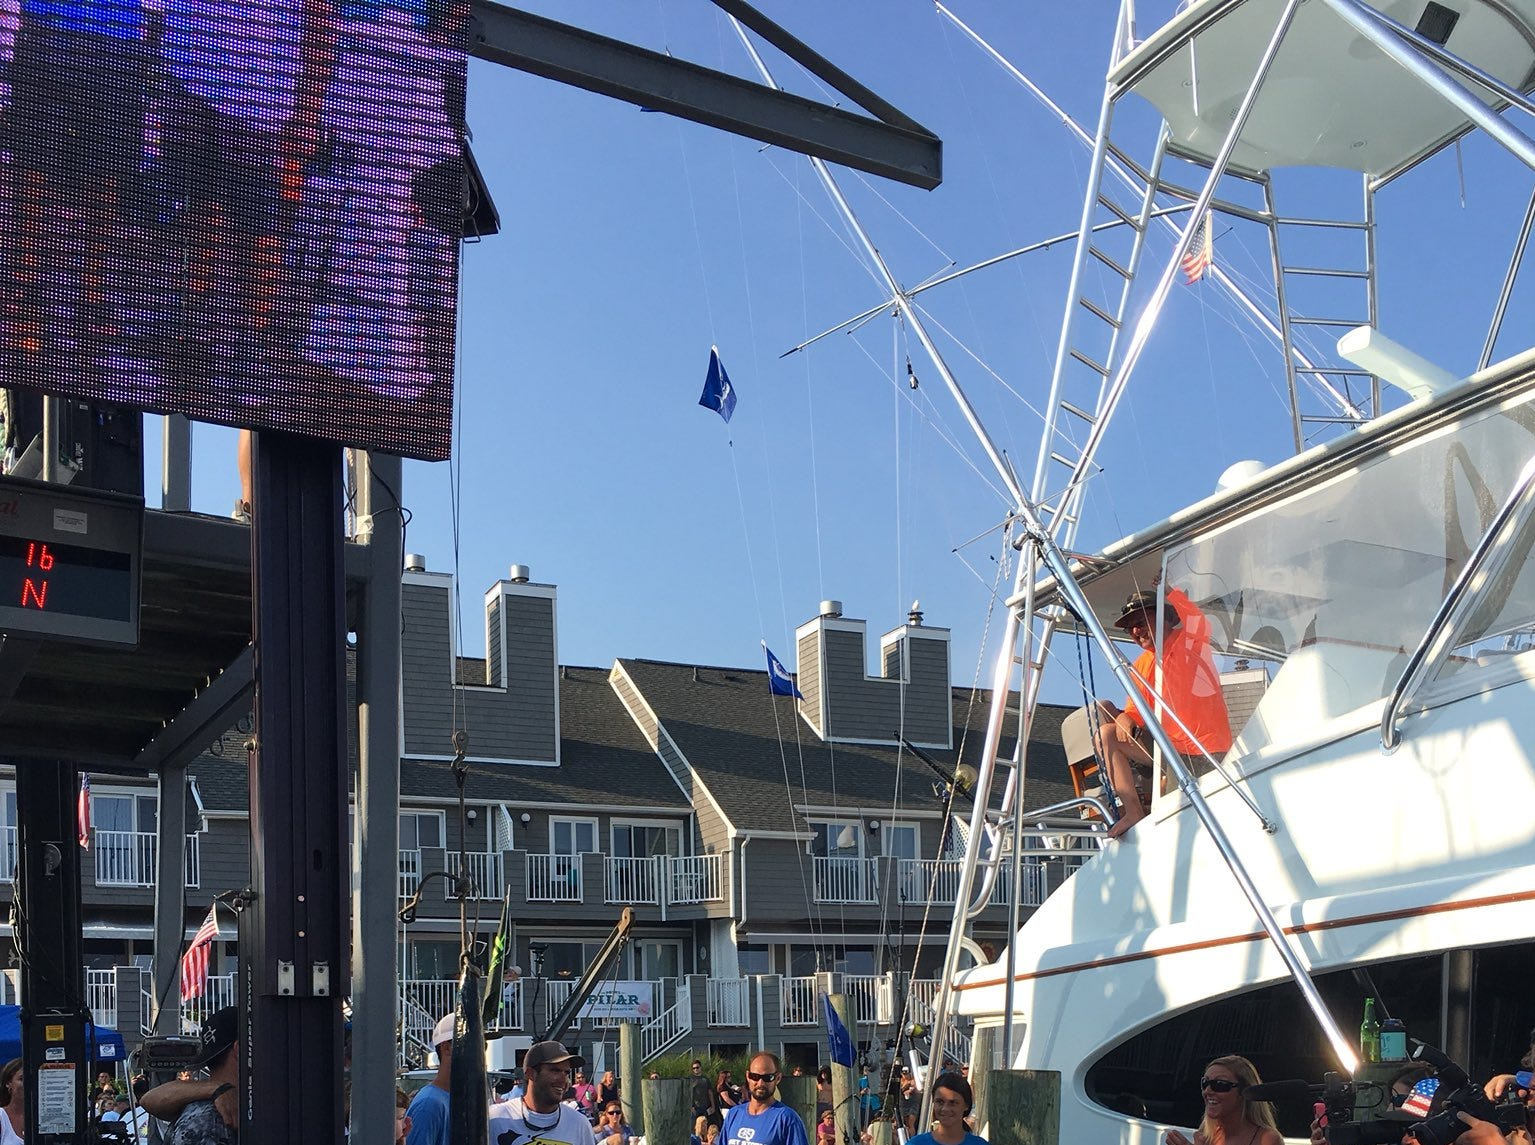 Angler Bill Haugland with his boat, Lights Out, caught the first qualifying white marlin in the at 75 pounds during day 2 of the White Marlin Open fishing tournament in Ocean City, Maryland on Aug. 7, 2018.